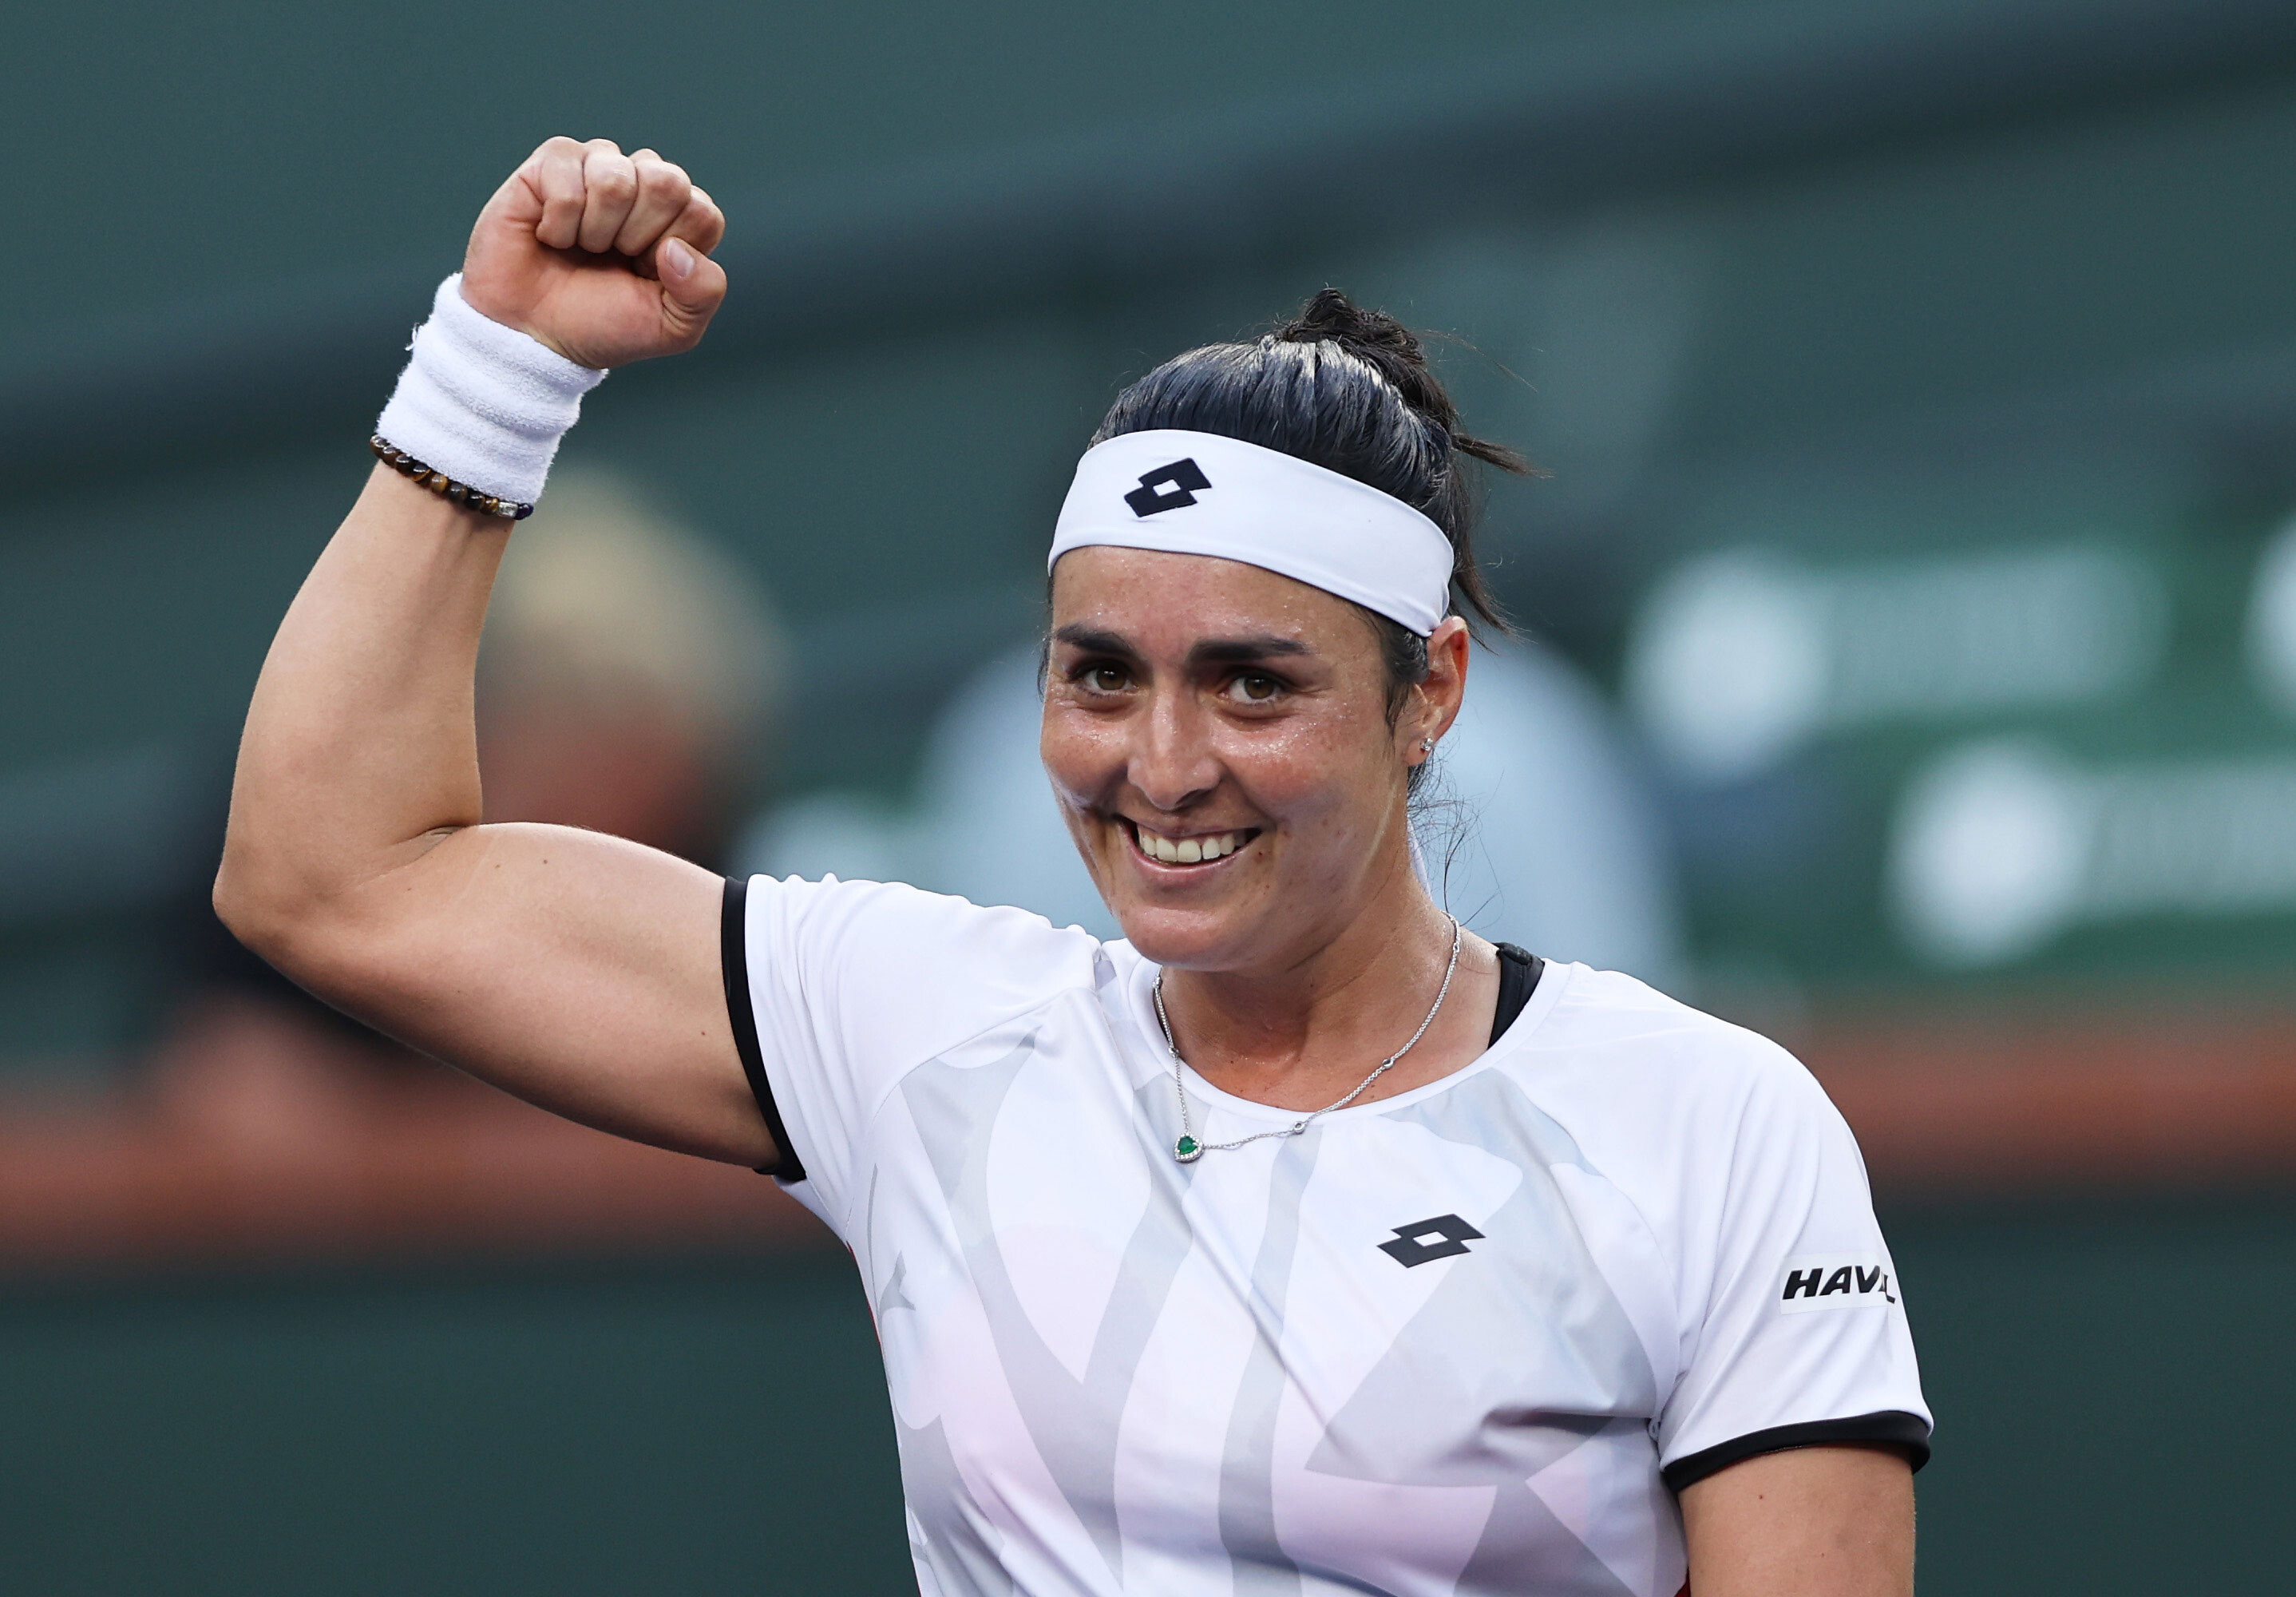 Ons Jabeur becomes first Arab tennis player — male or female — to break into the top 10 in singles